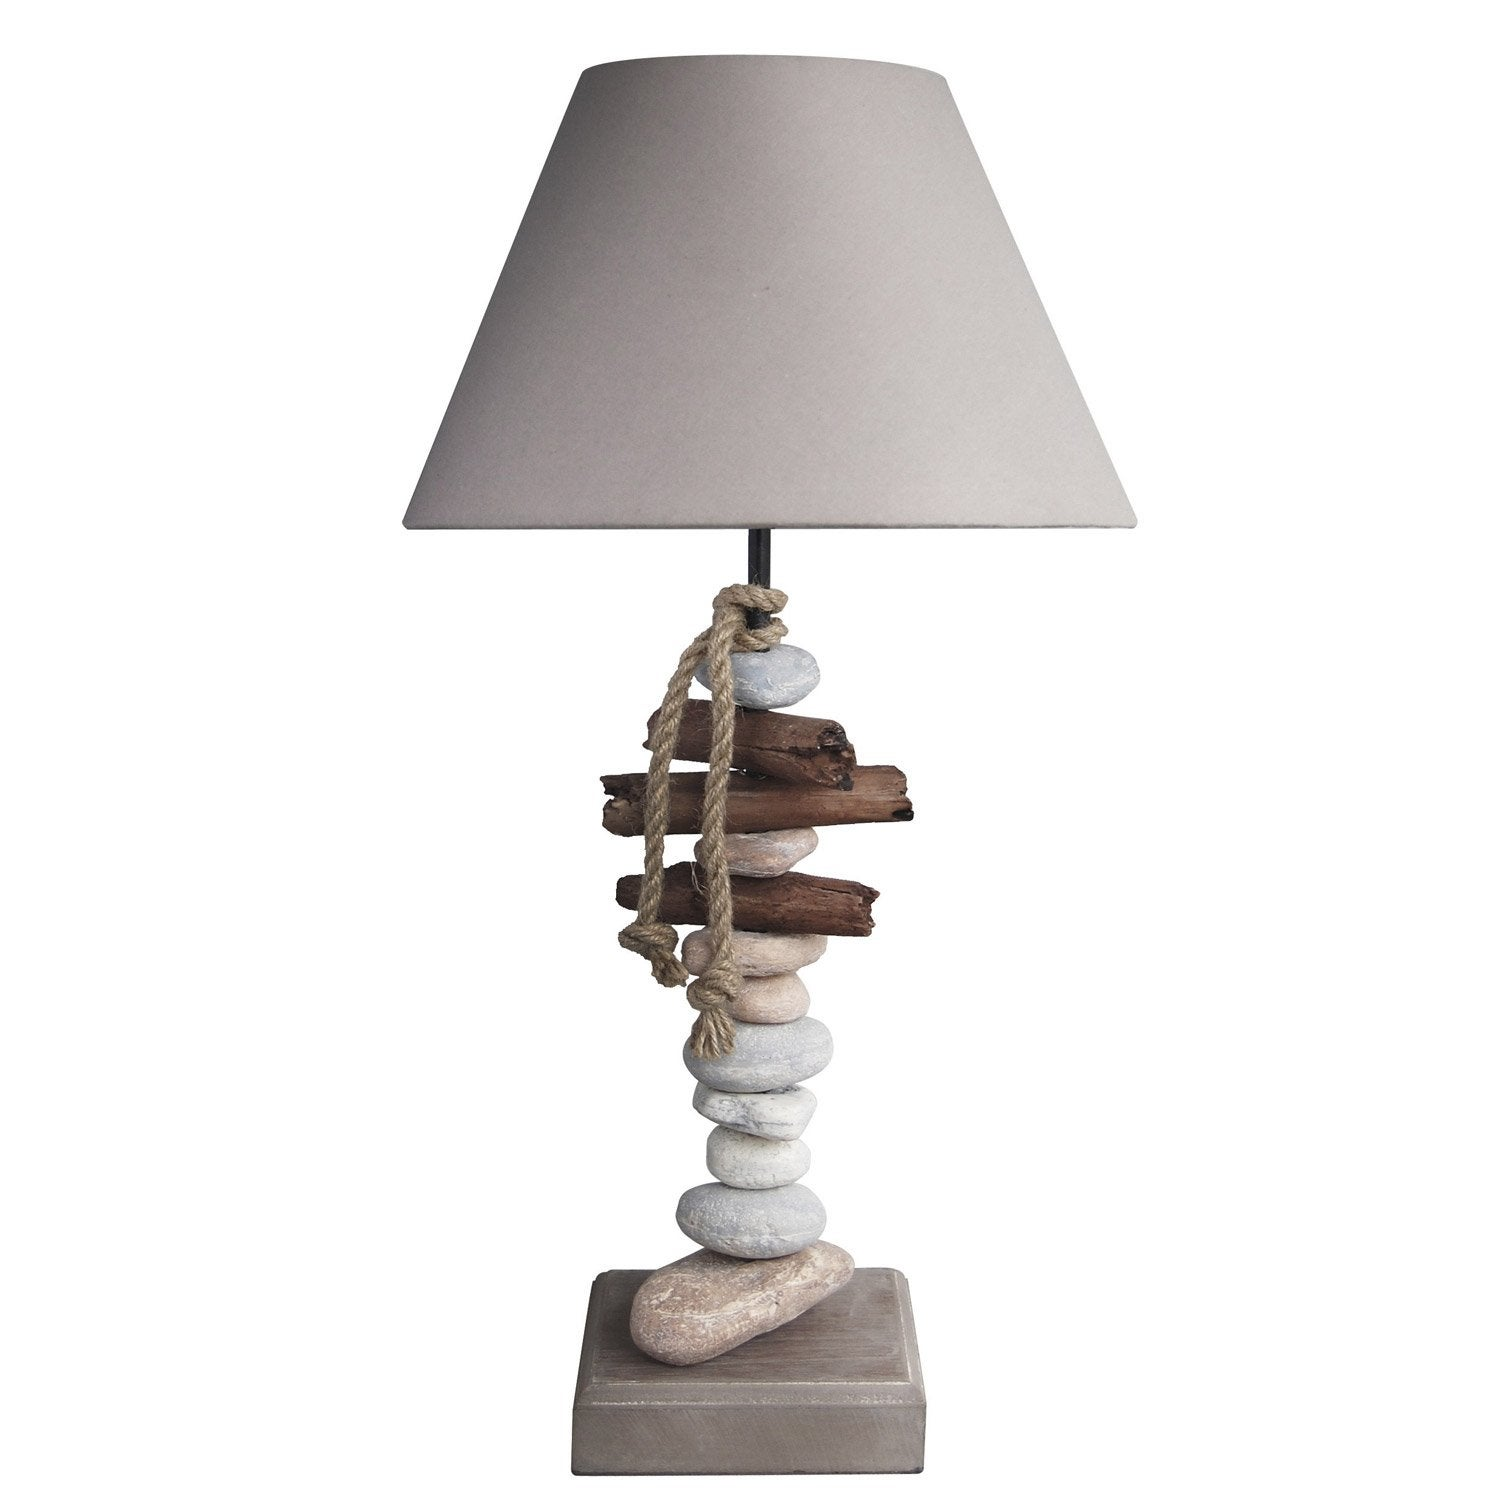 Lampe benodet seynave coton naturel 60 w leroy merlin - Table de chevet leroy merlin ...